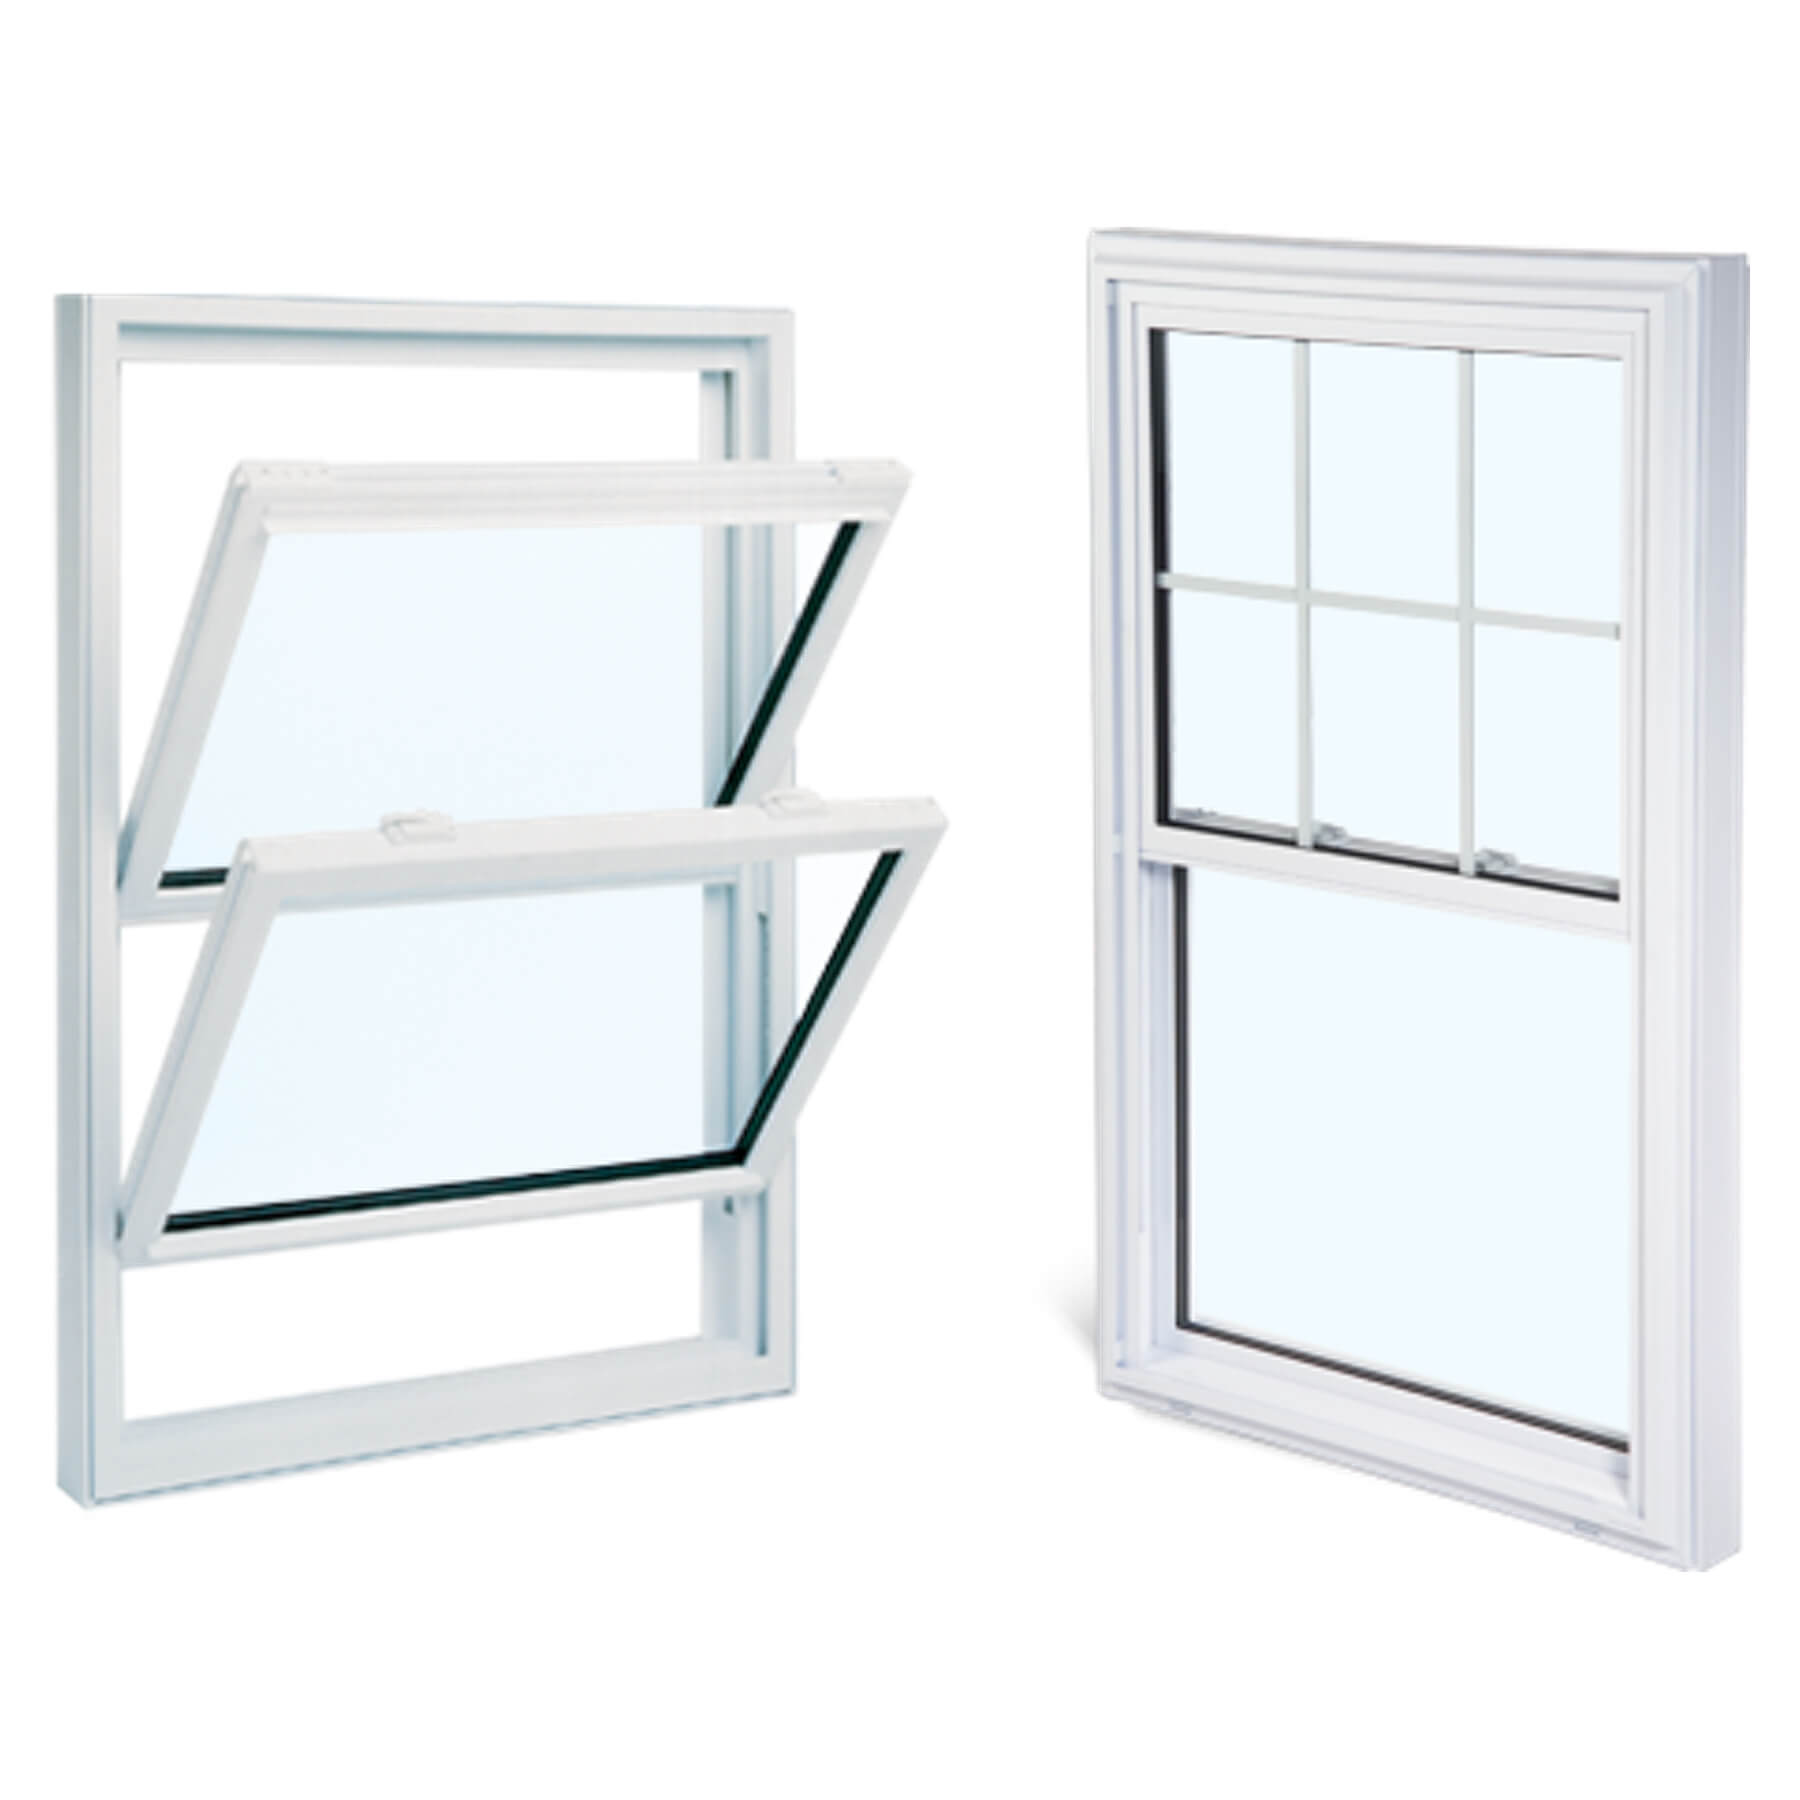 Replacement windows and vinyl replacement windows all for Double hung window